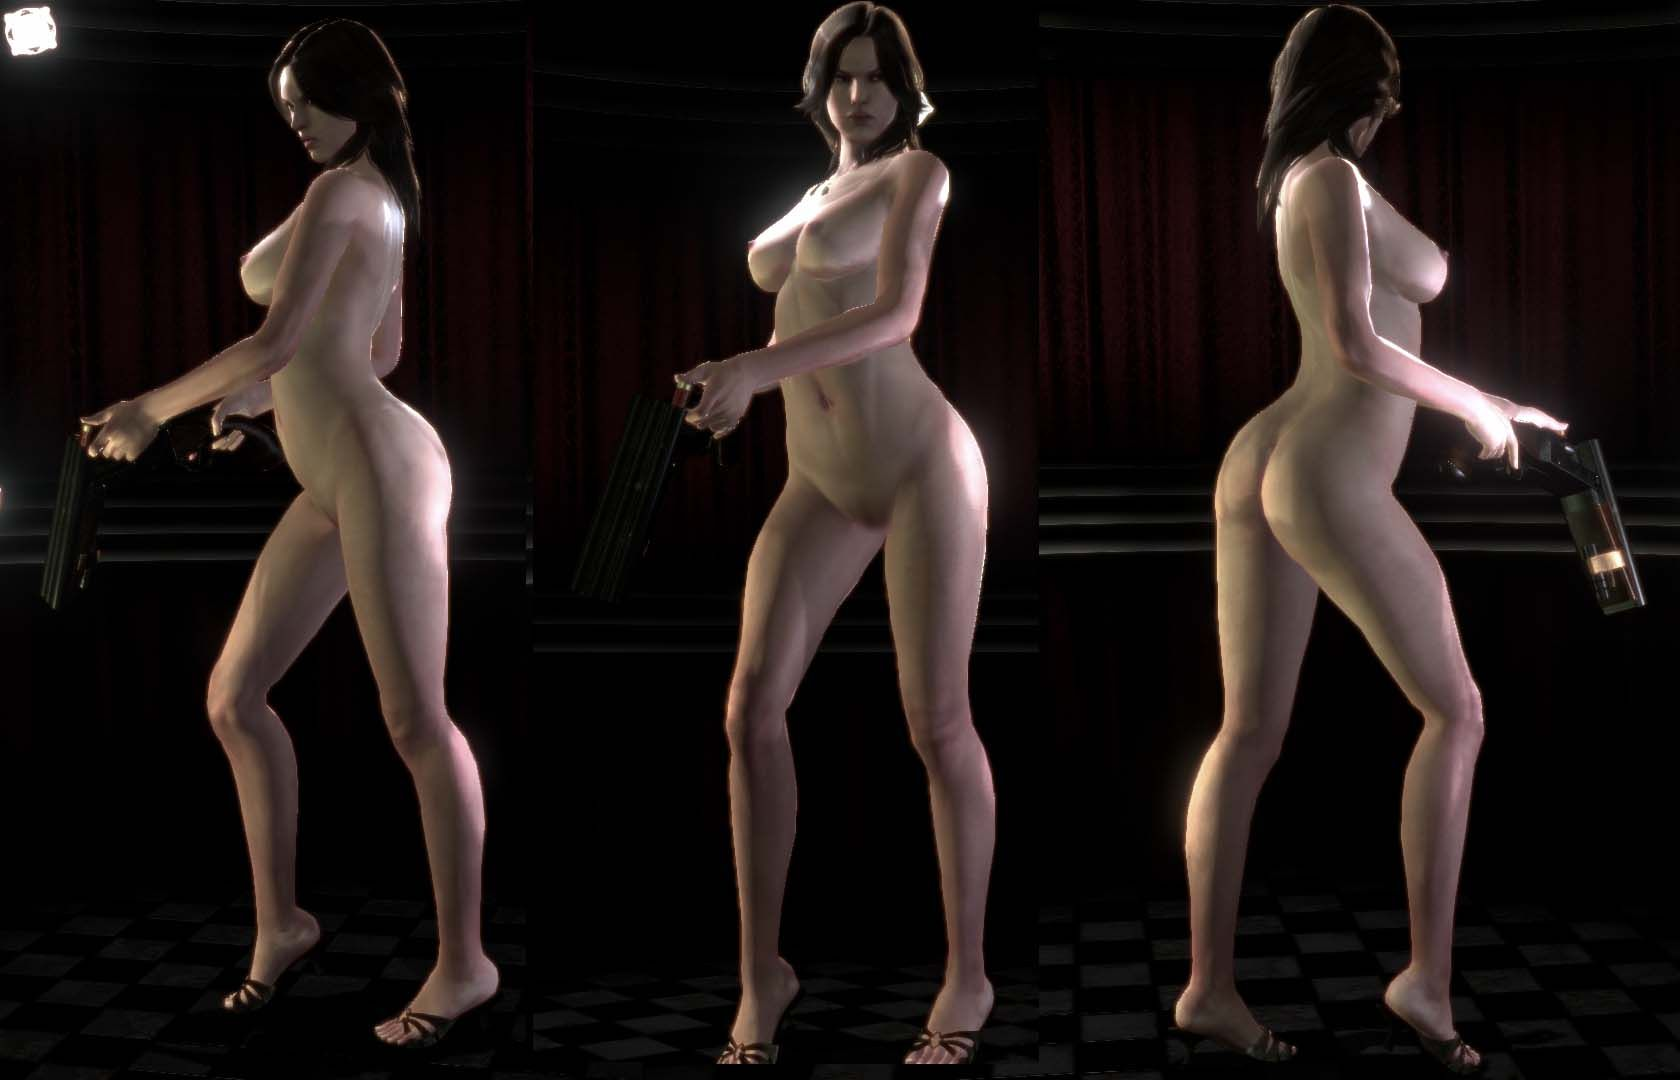 Nude 3d girl faked hd photo fucked images